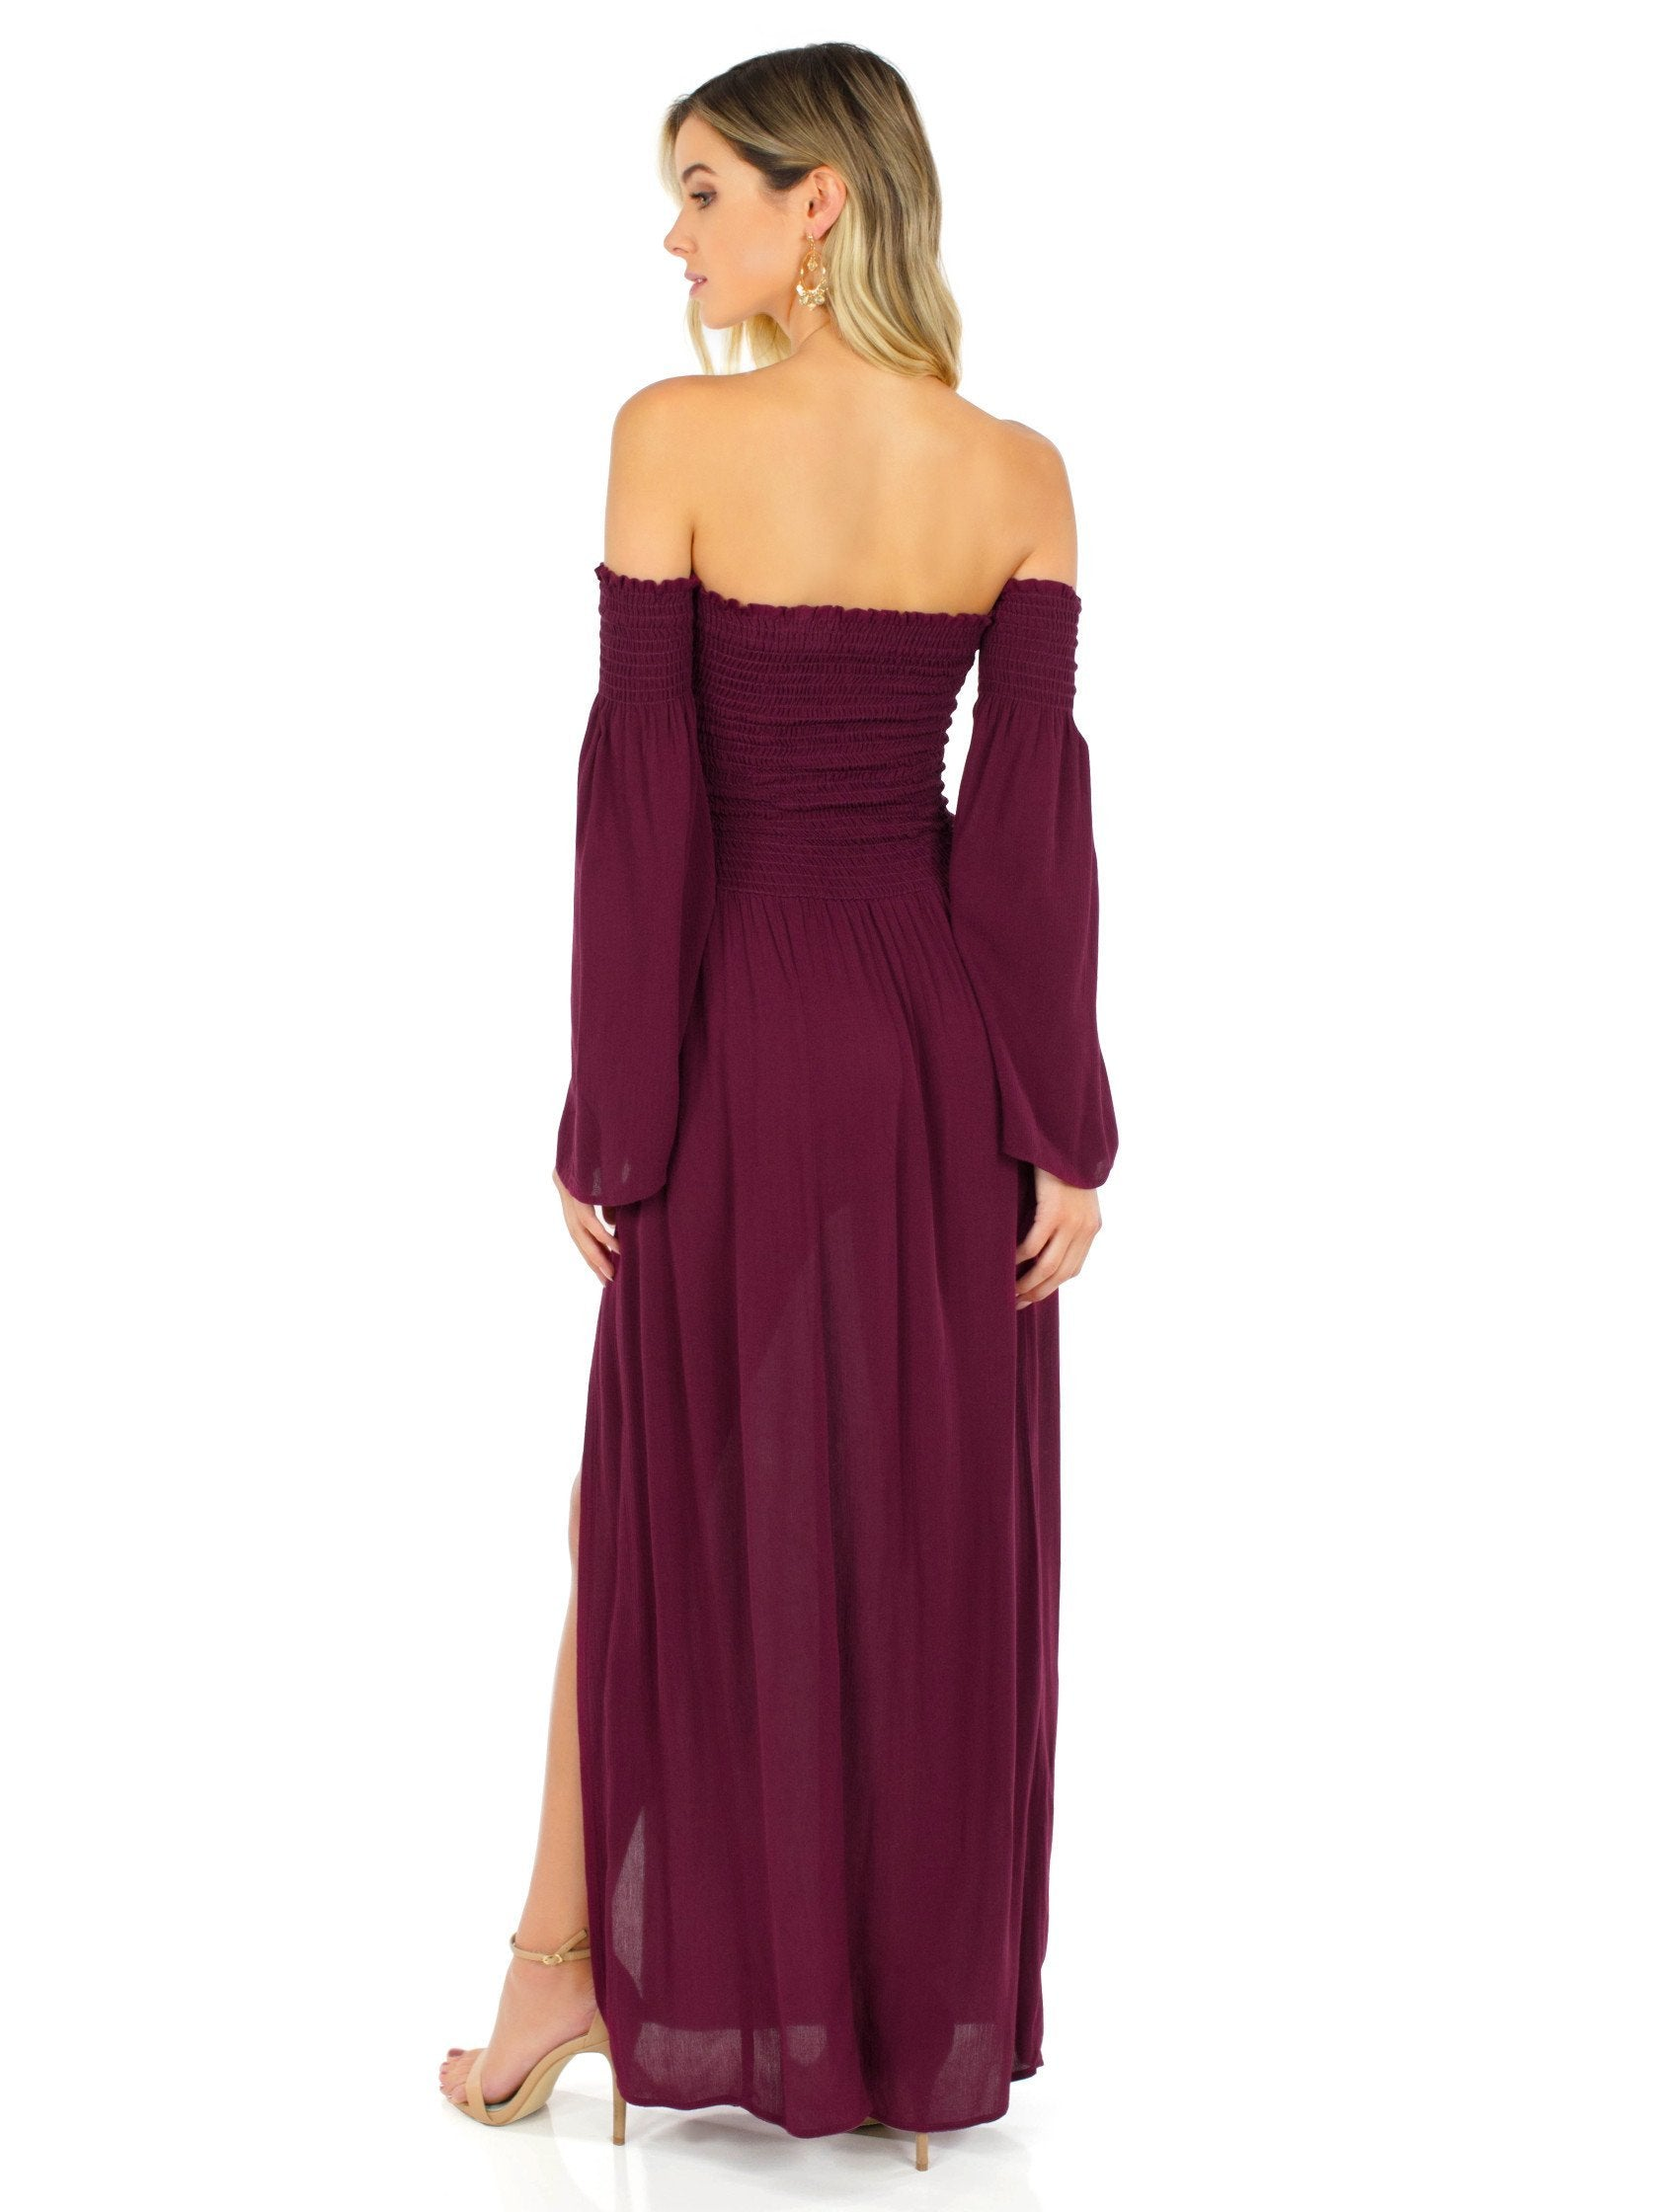 Girl outfit in a dress rental from Blue Life called Festive Off Shoulder Maxi